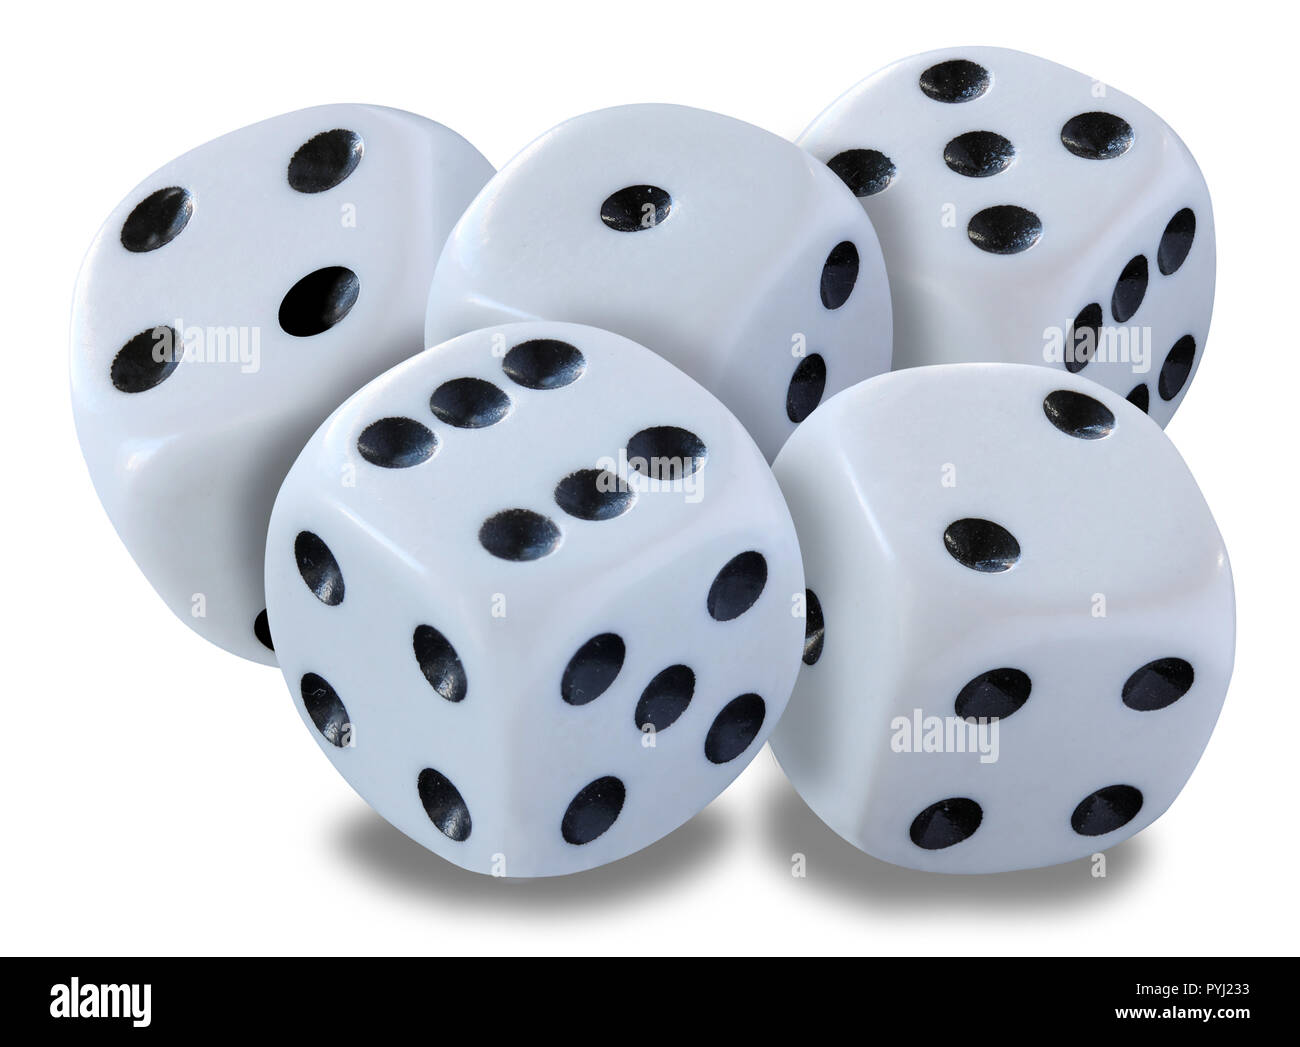 Big white dices in a pile - thrown in a craps game, yatsy or any kind of dice game against a white background with drop snadows - Stock Image